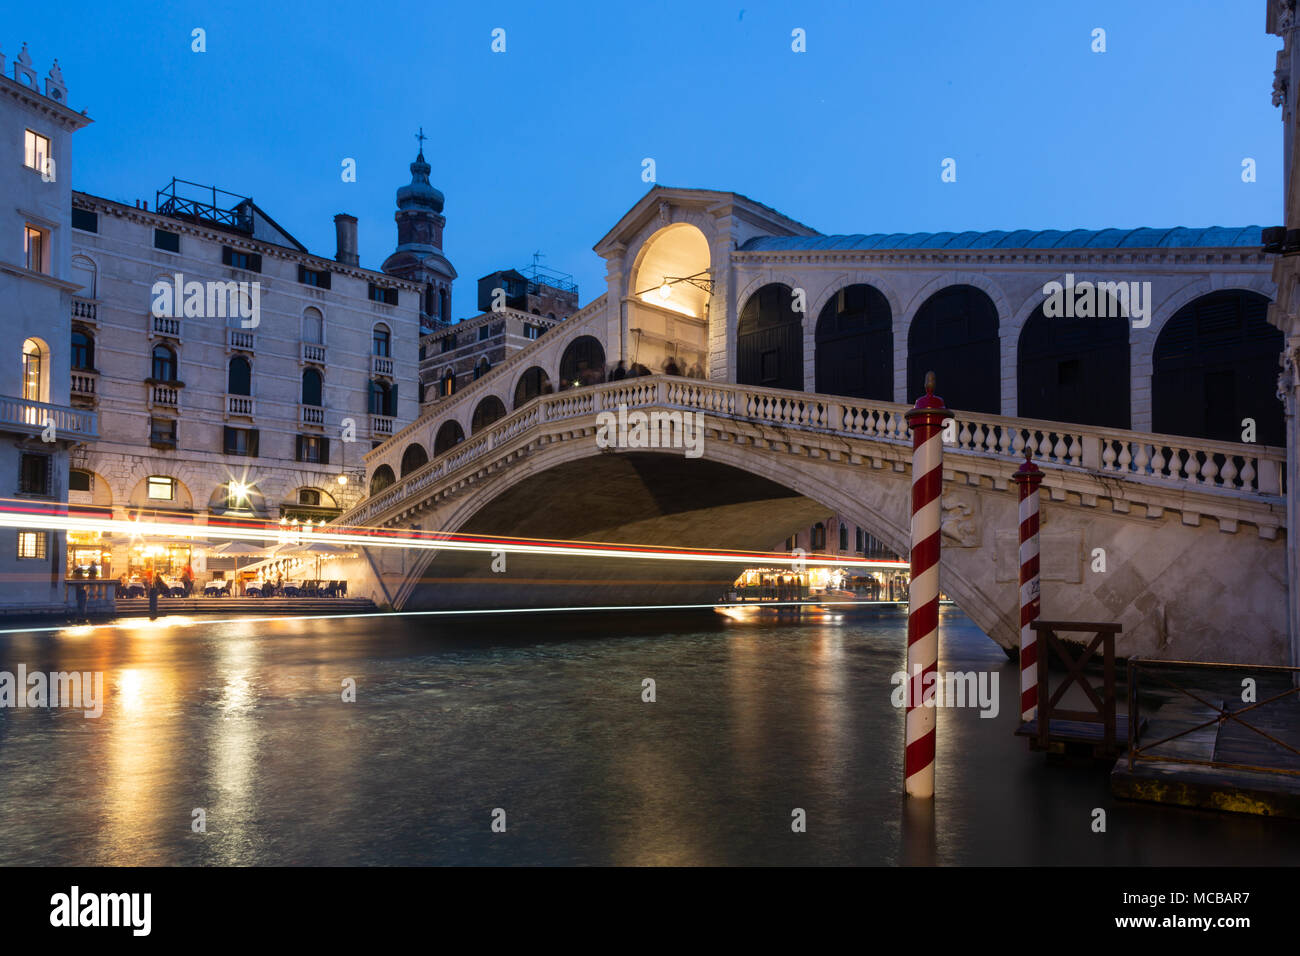 The Rialto and Grand Canal at night, Venice, Italy - Stock Image